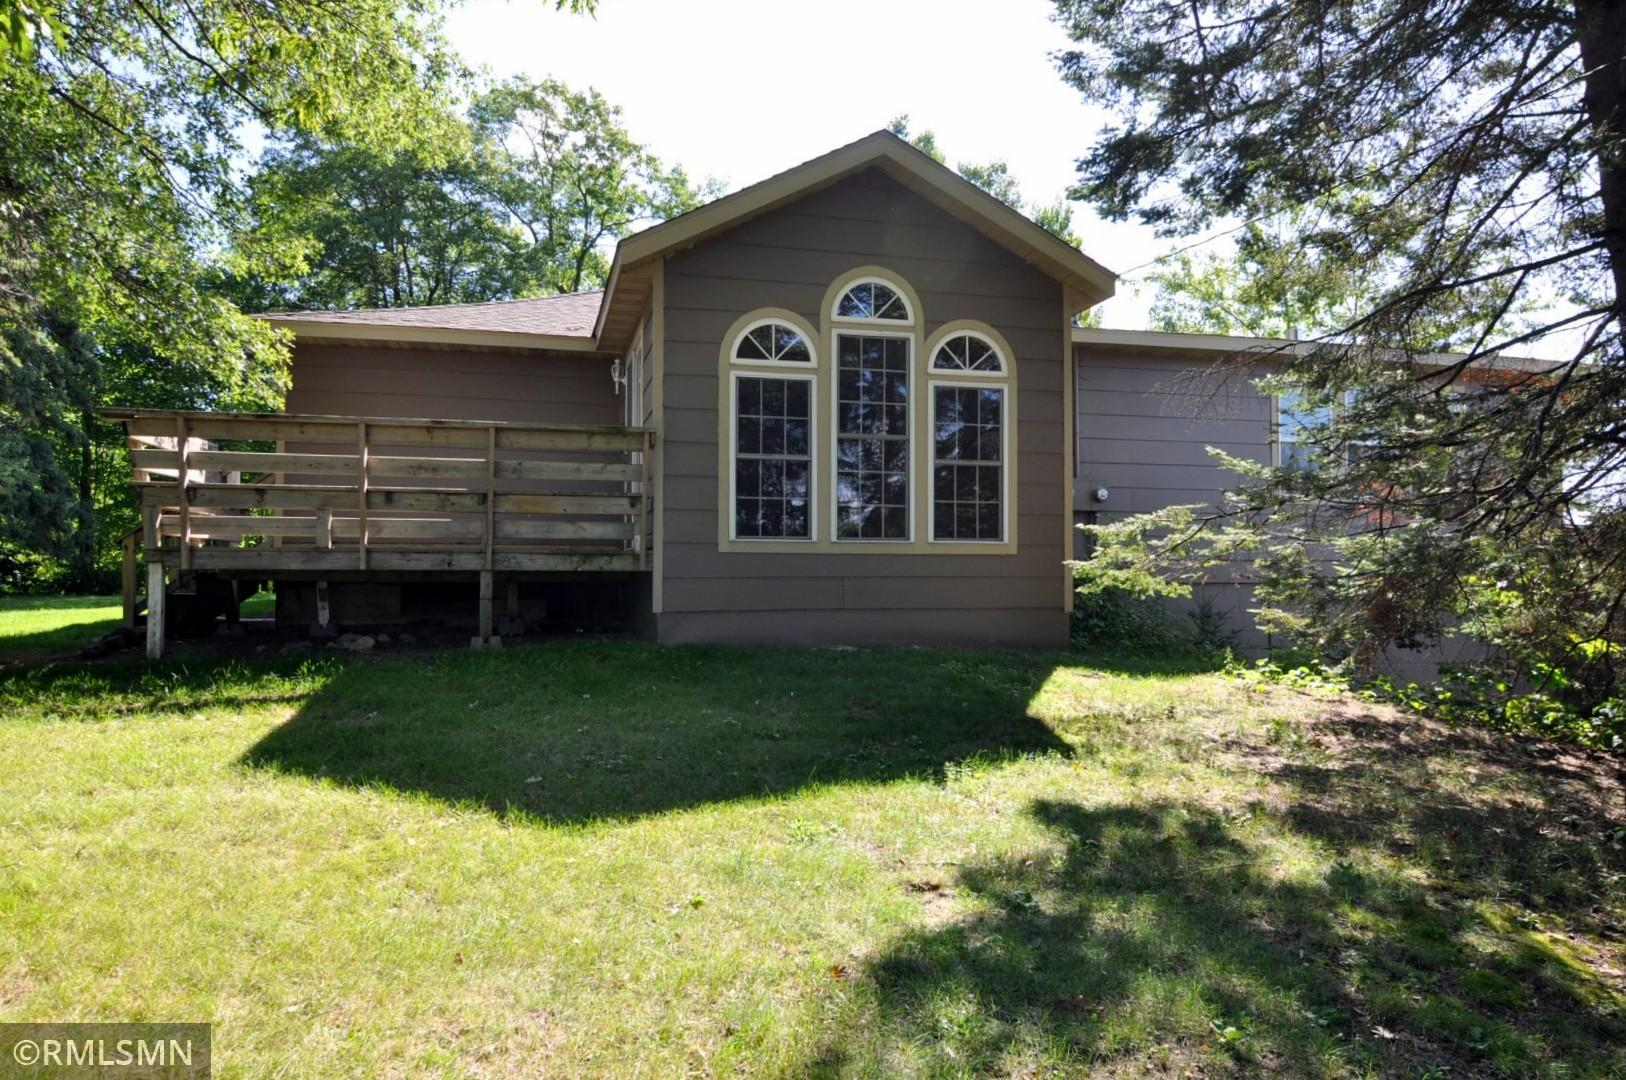 3914 State 371 NW Property Photo - Hackensack, MN real estate listing